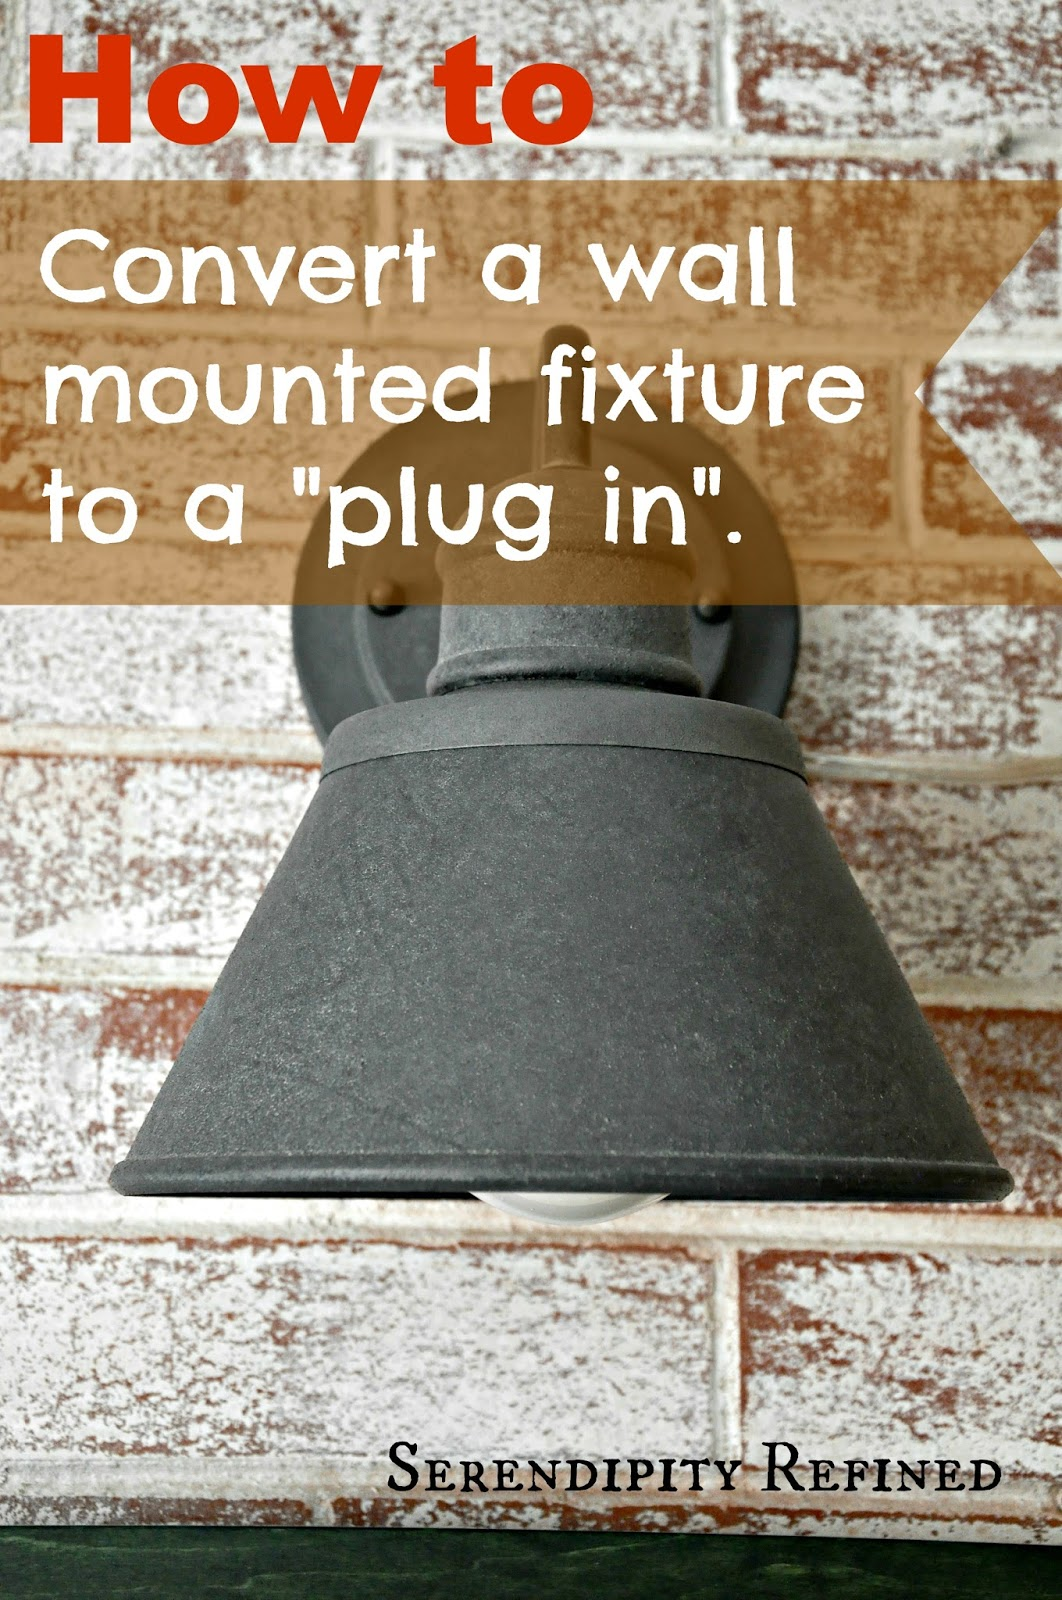 How to Add an Electrical Plug to a Wall Mounted Light Fixture - Serendipity Refined Blog: How To Add An Electrical Plug To A Wall